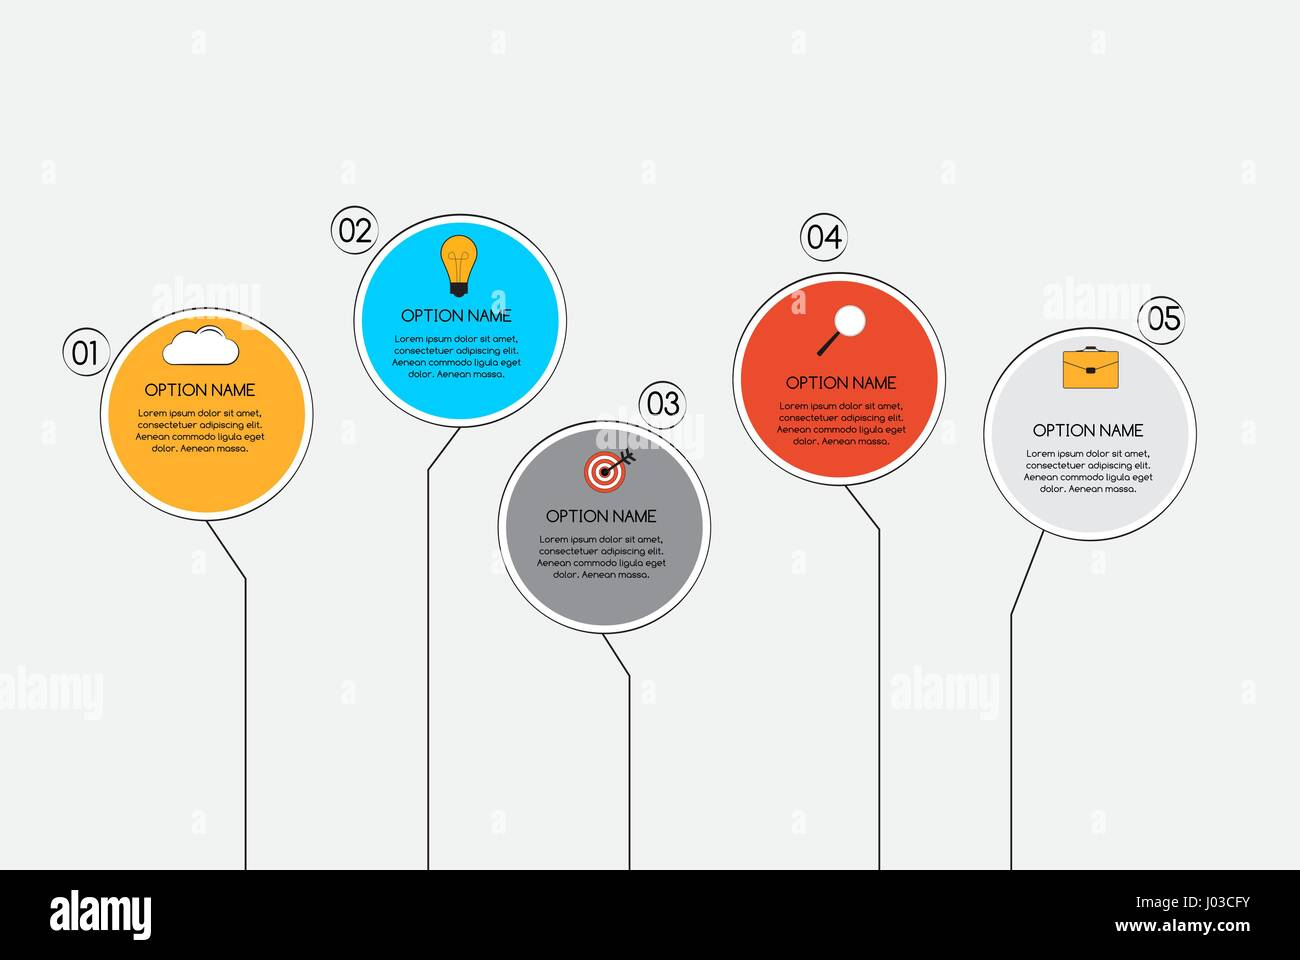 Infographic Templates for Business Vector Illustration - Stock Image